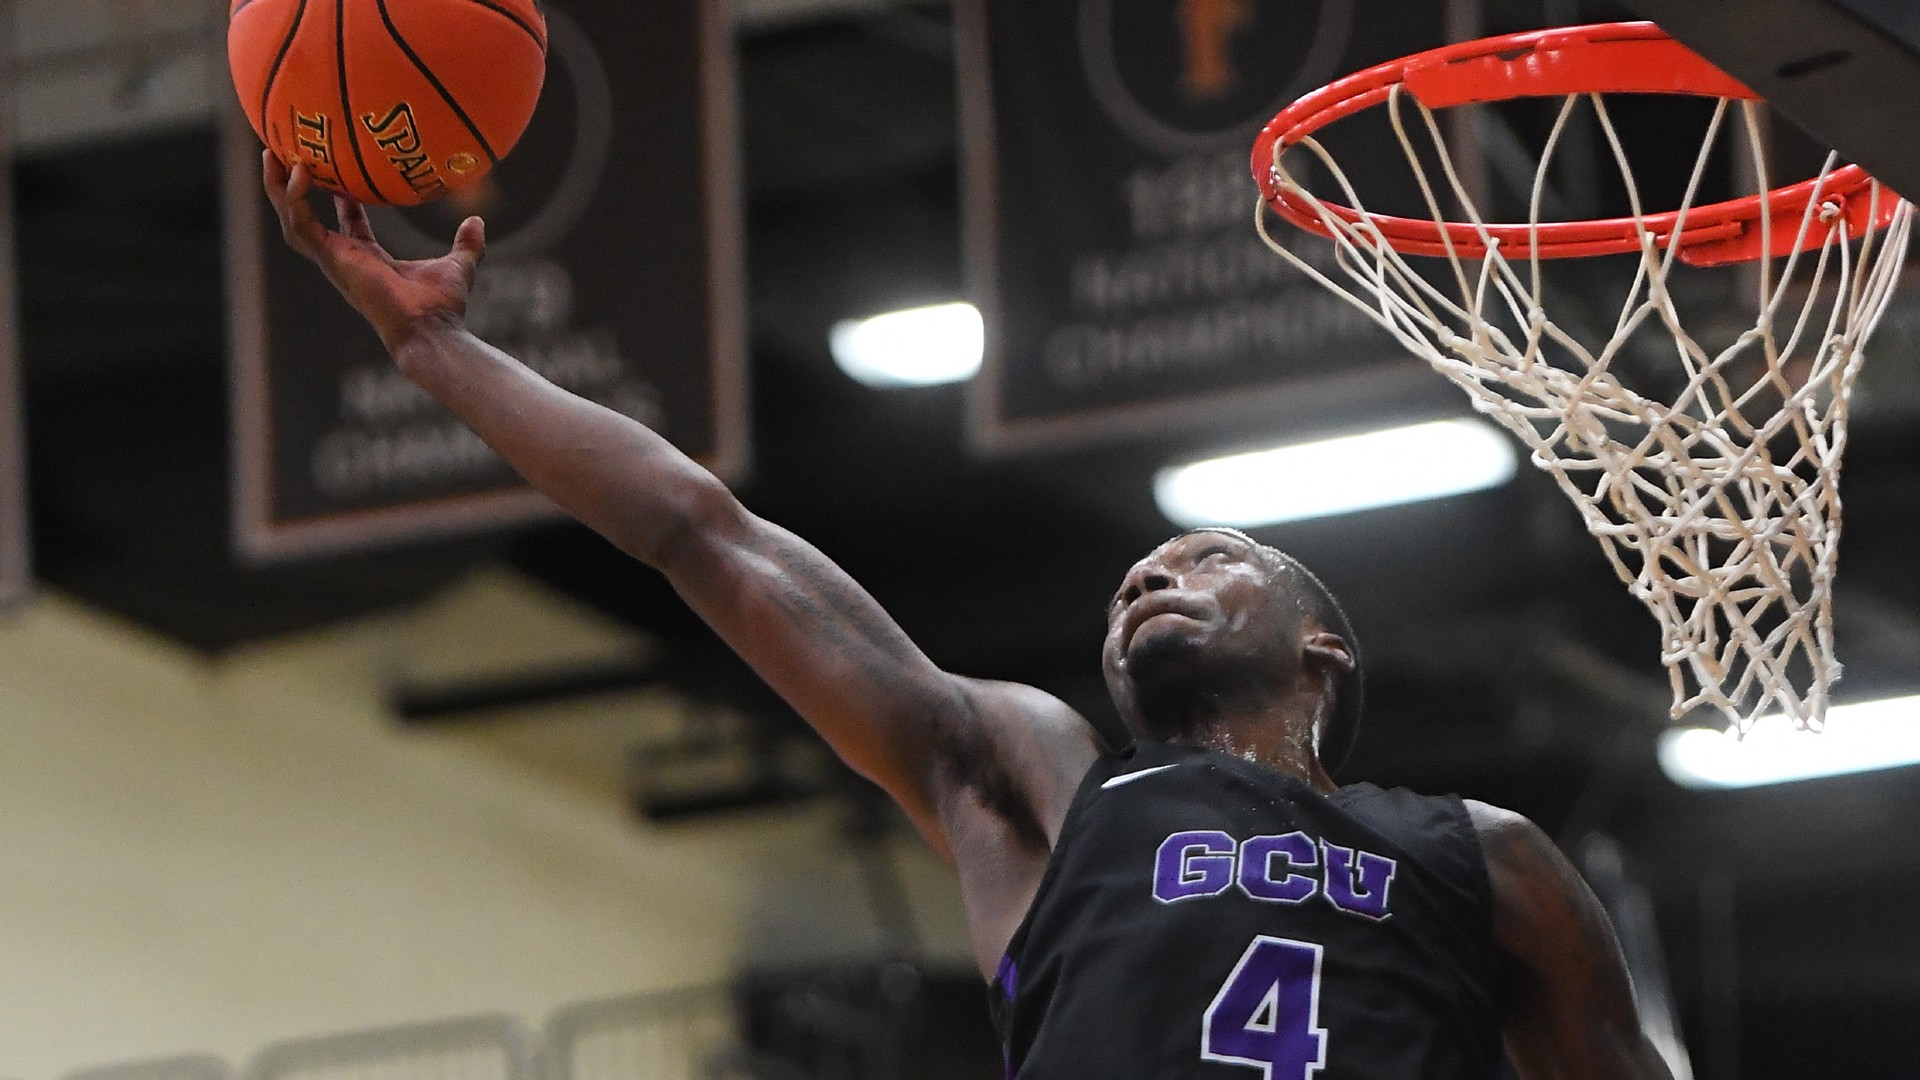 Oscar Frayer of Grand Canyon died in a car accident three days after playing in the NCAA Championship